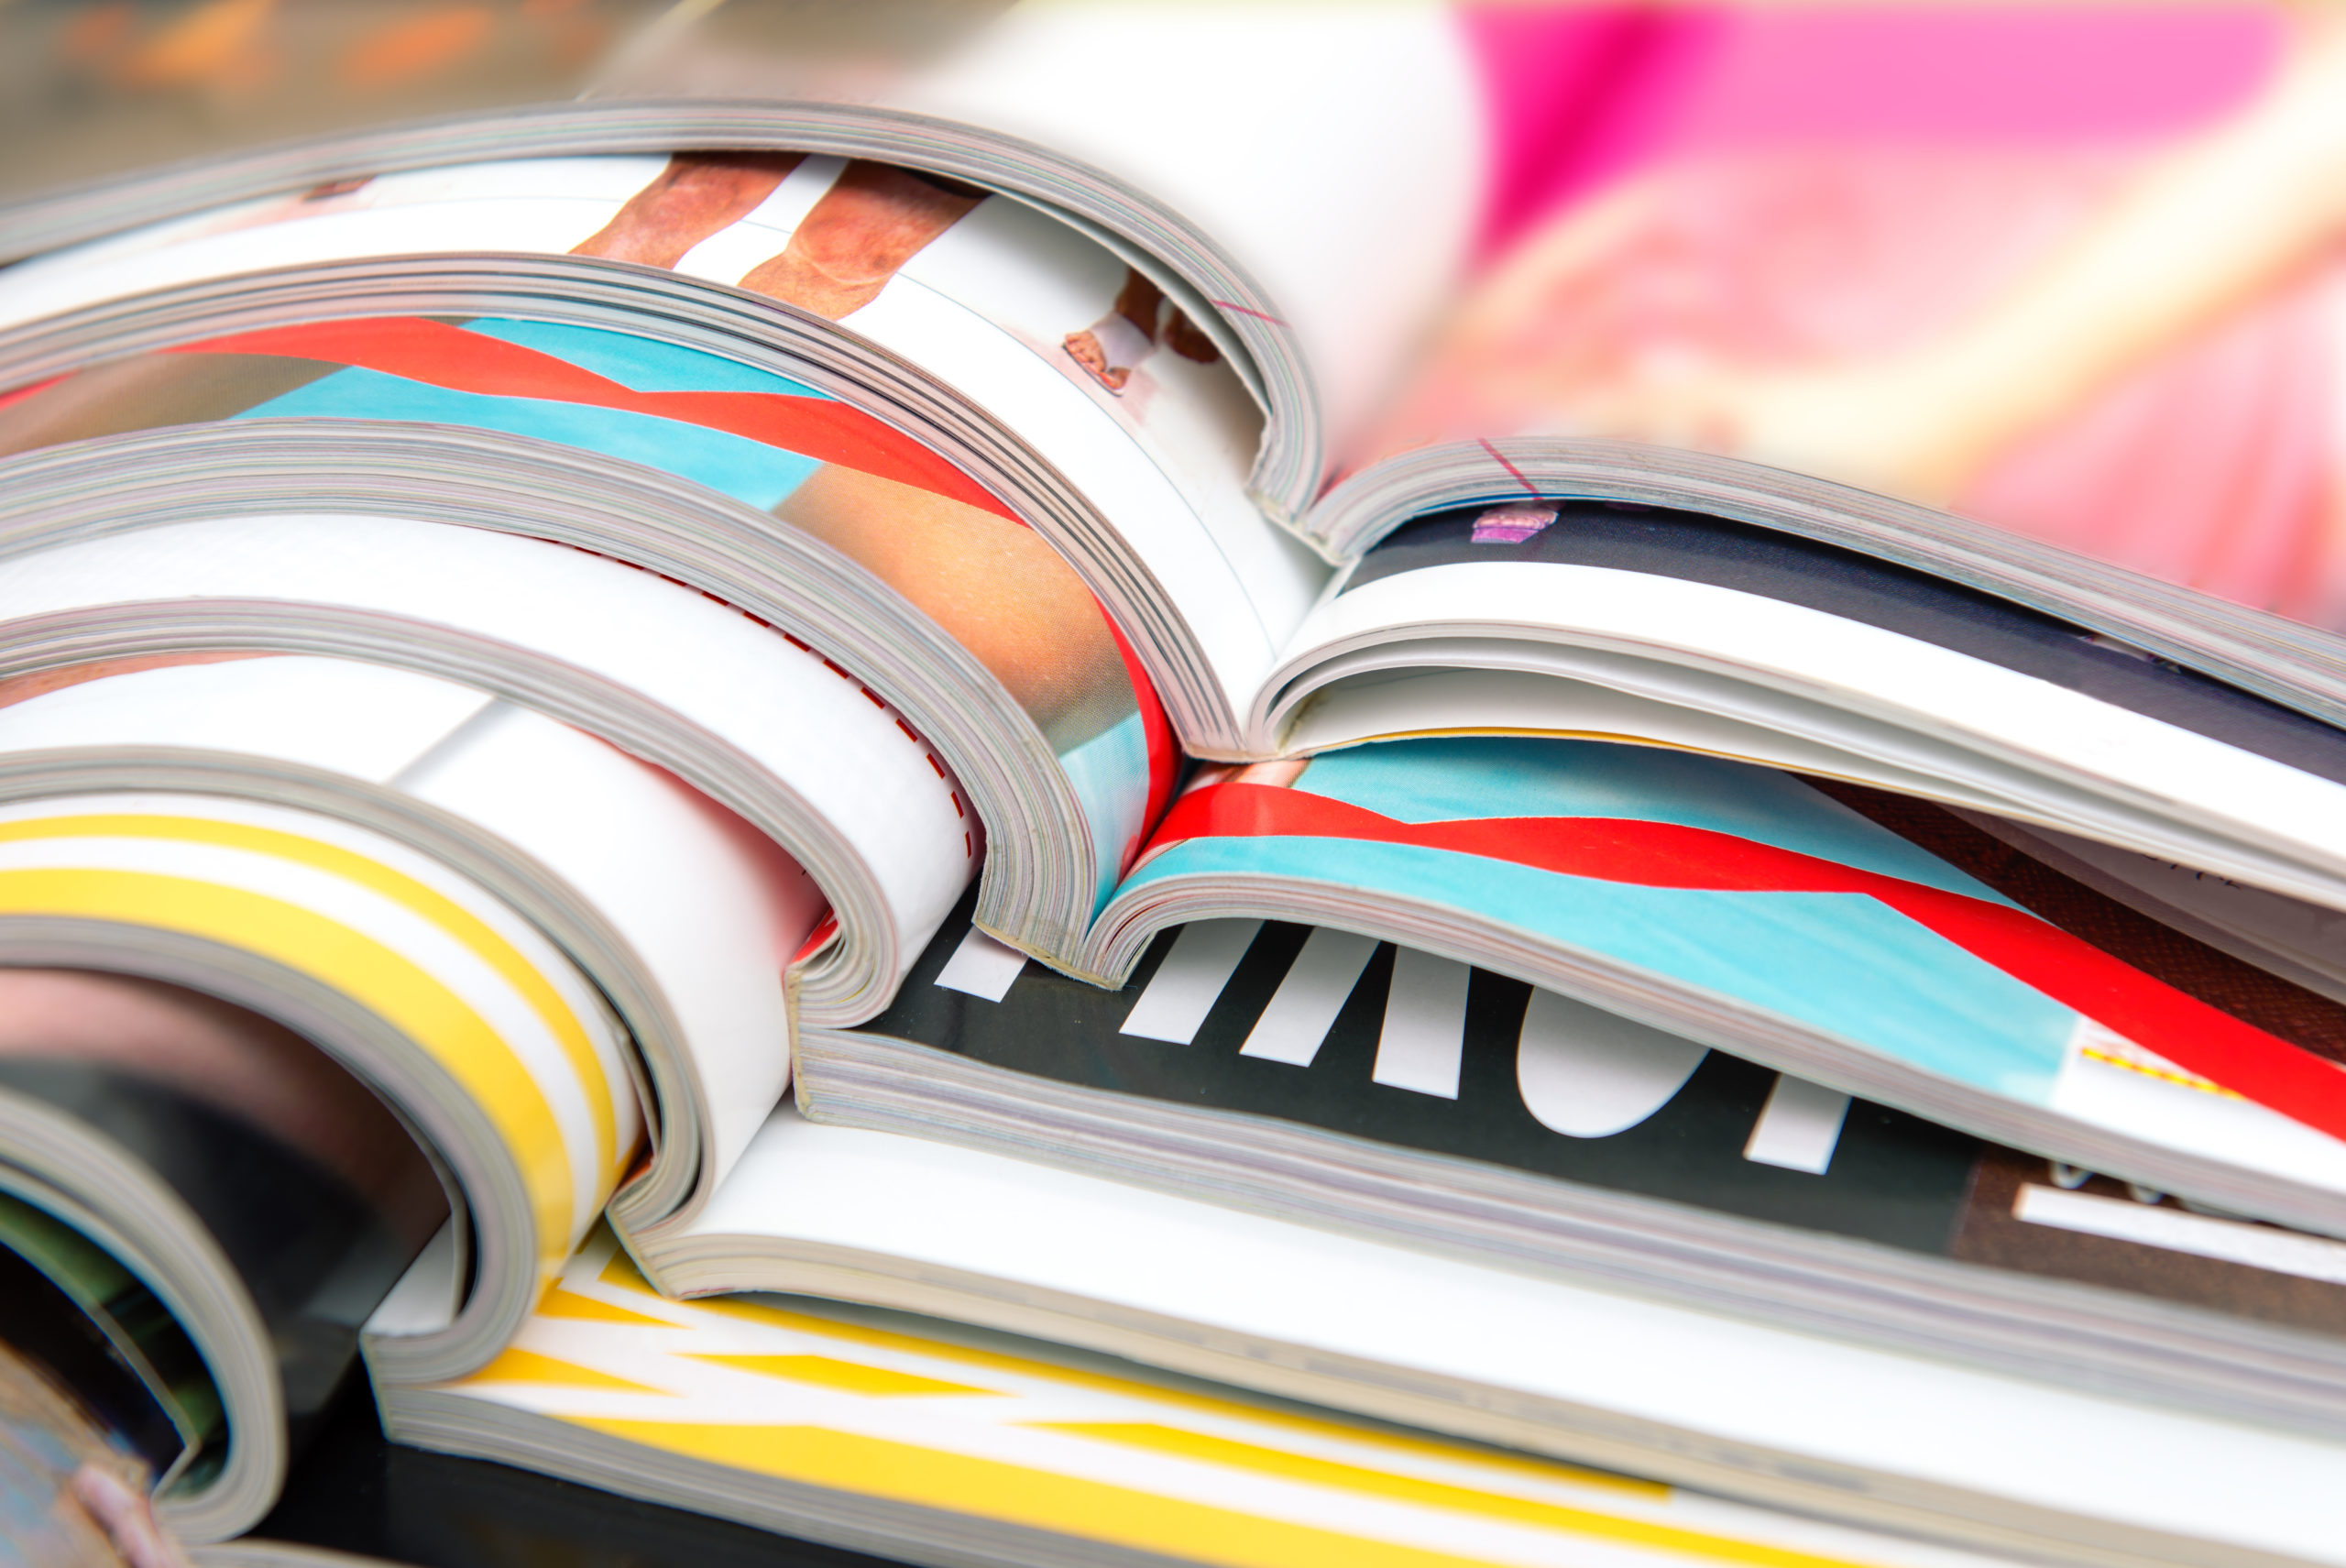 """The word """"magazine"""" comes from Arabic, which means """"warehouses"""". You'll find a warehouse of information about which Arabic magazines you can read"""